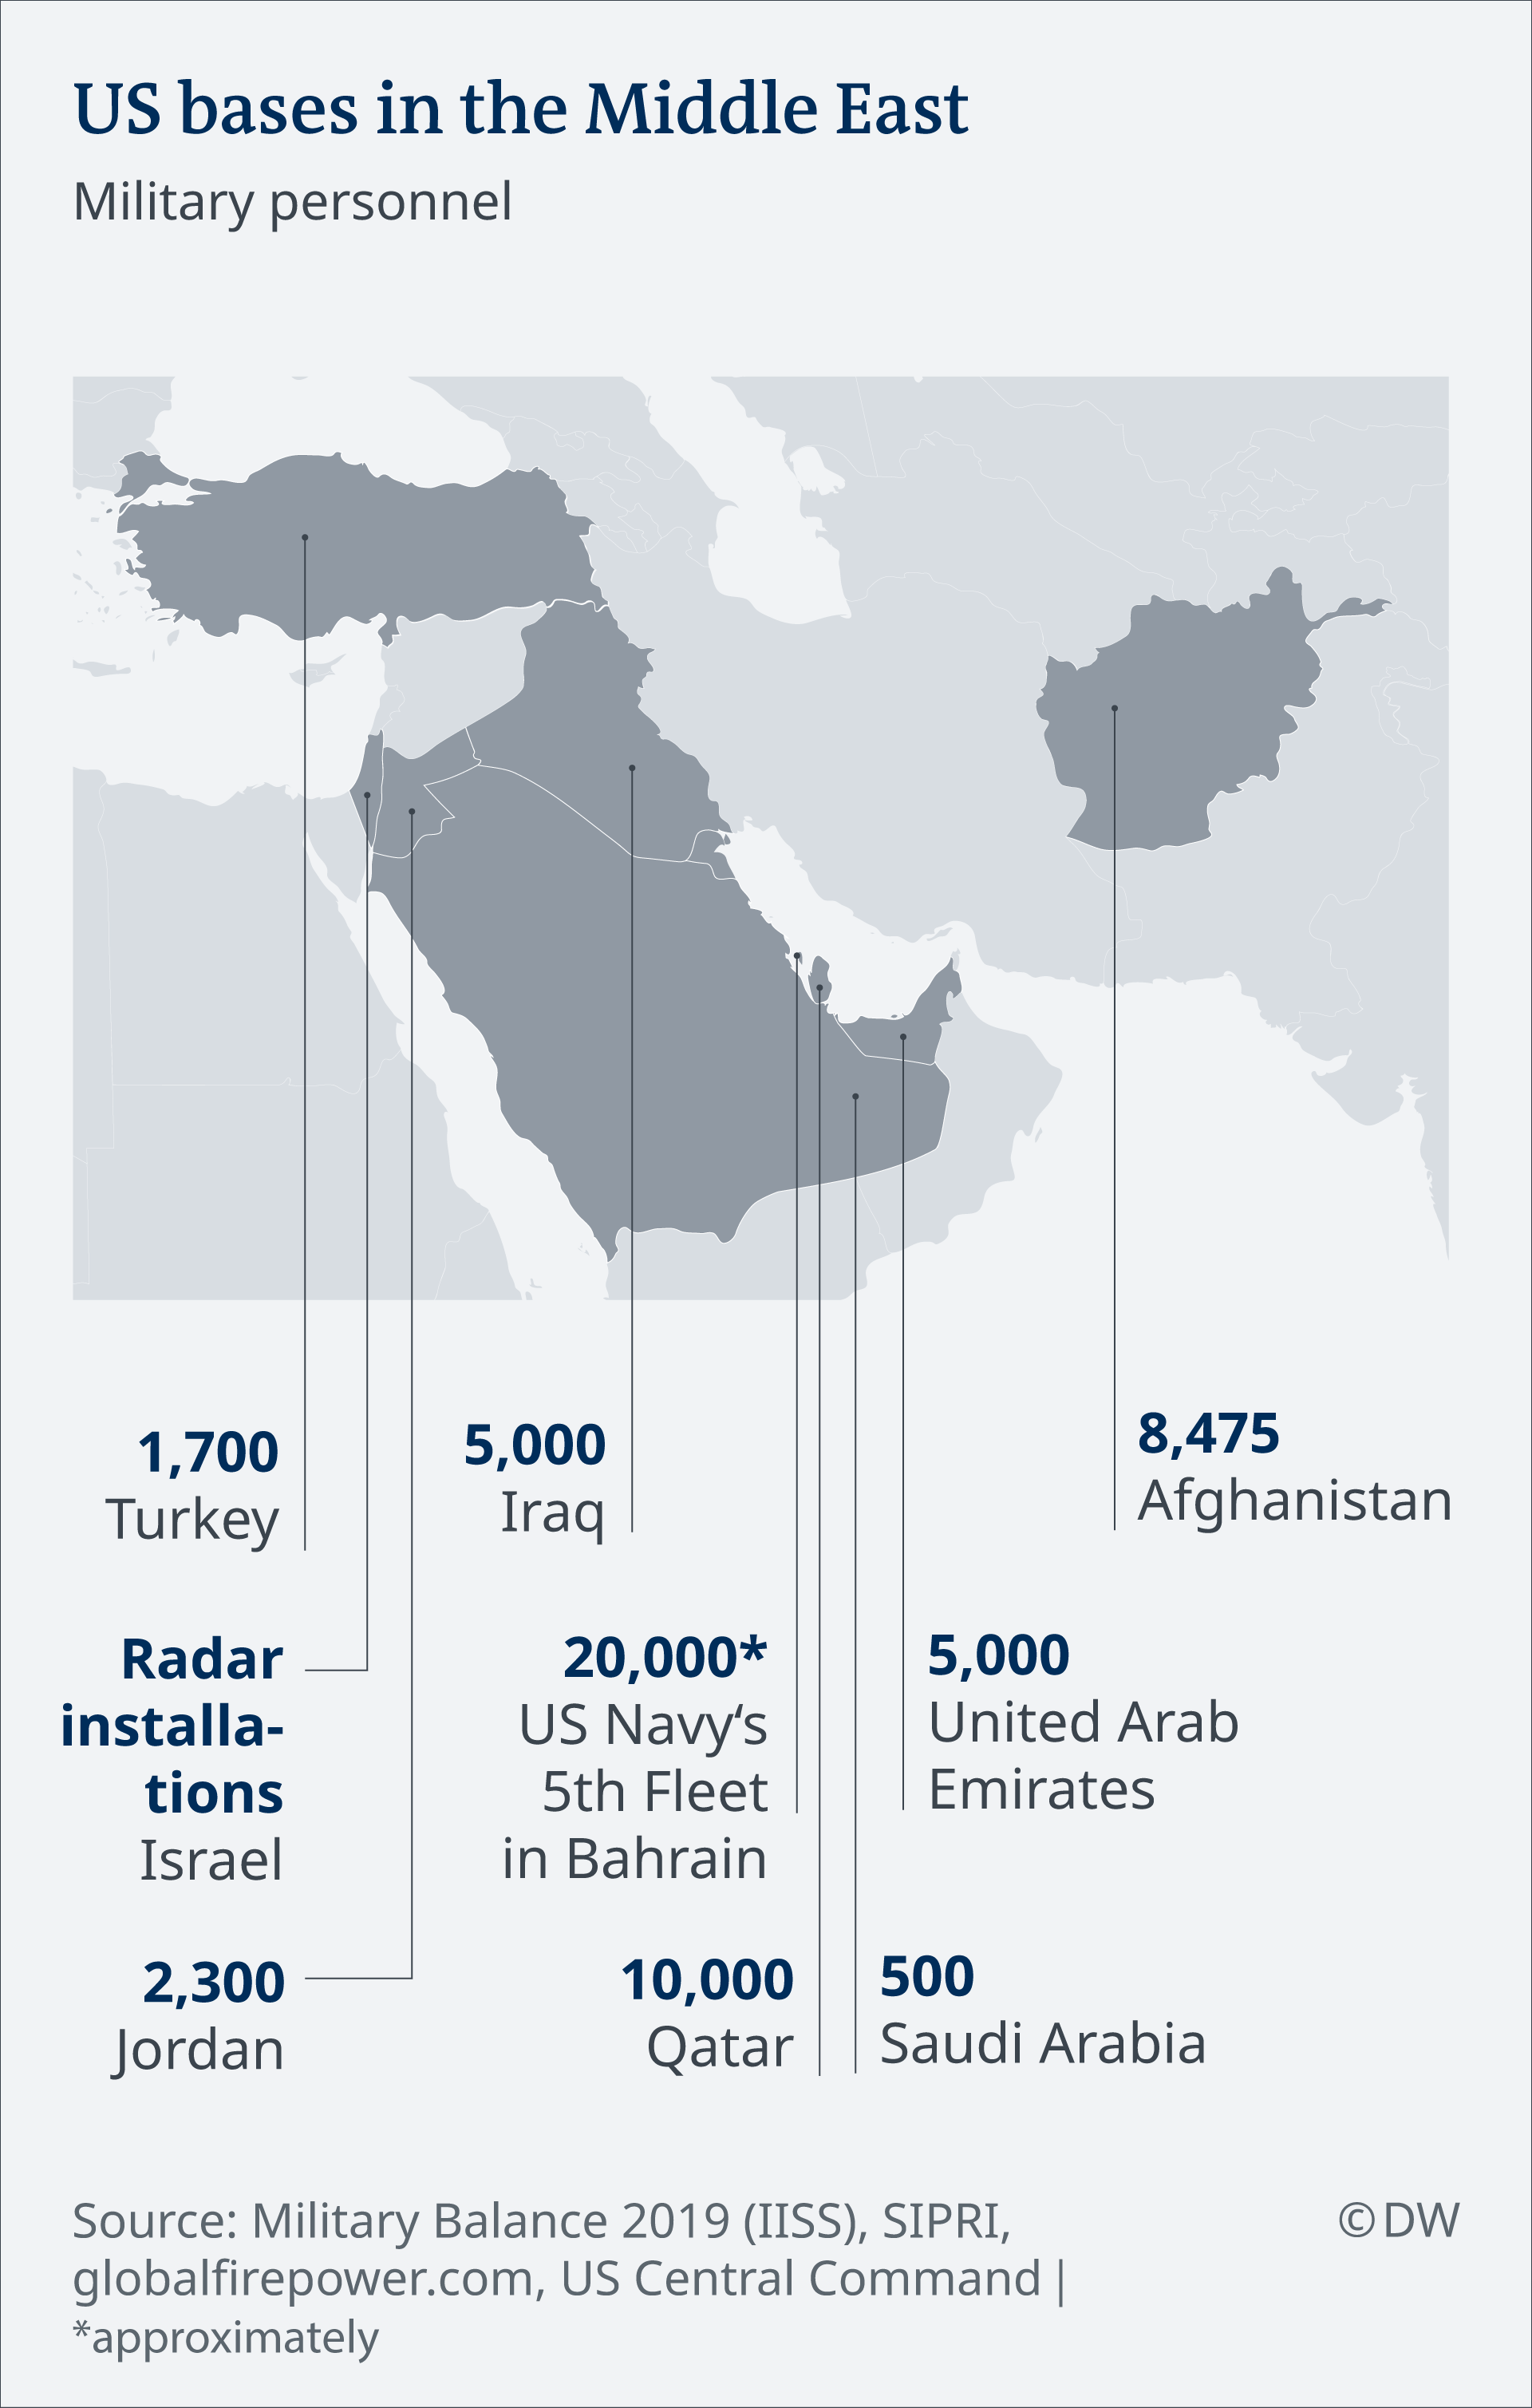 Number of US troops in Middle East